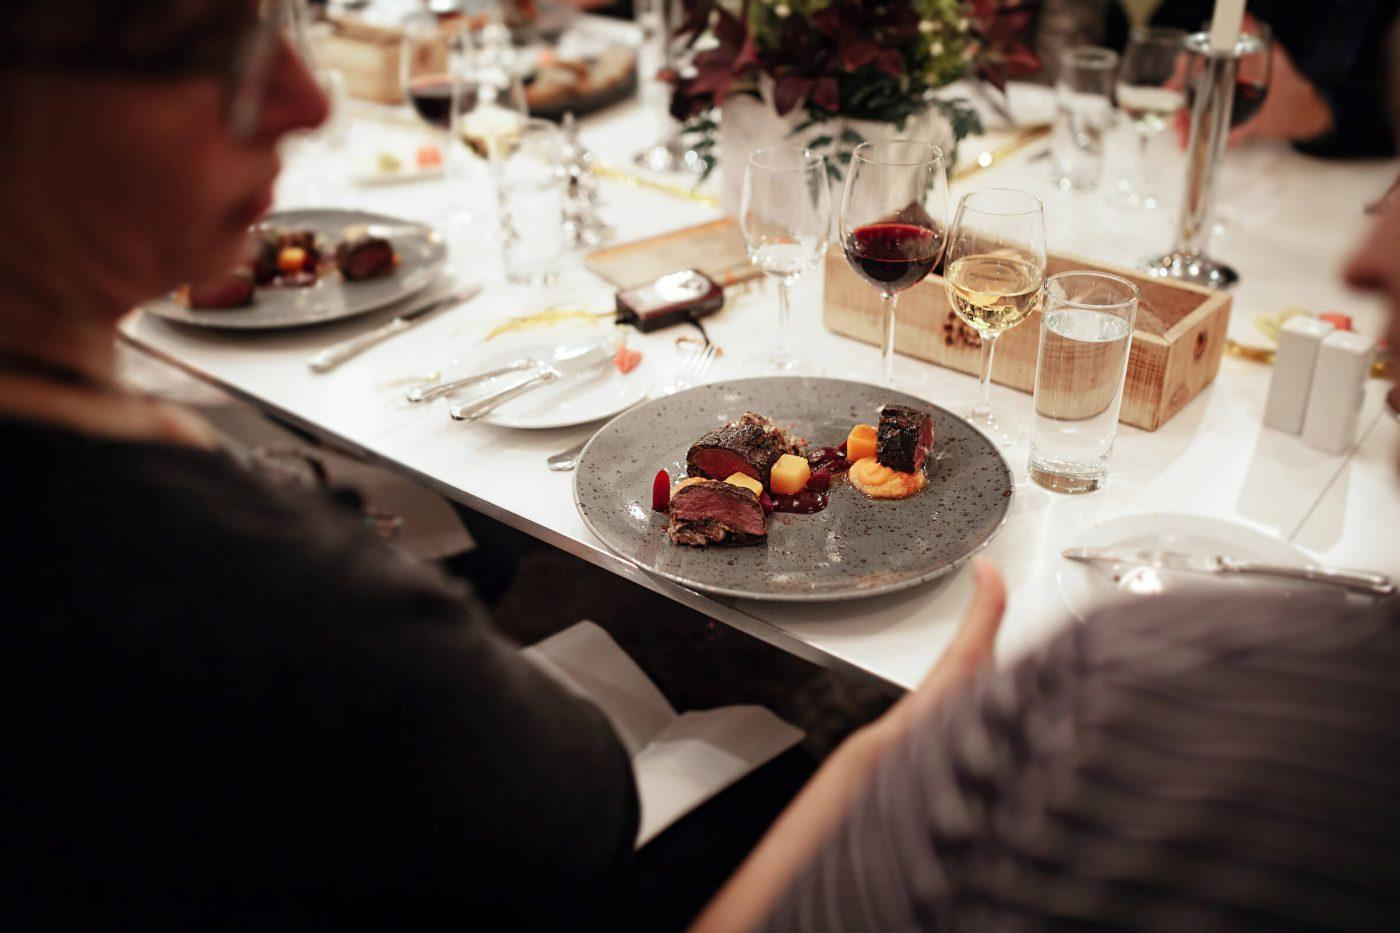 The reindeer maincourse from Hotel Hans Egede at a christmas dinner for locas and tourists in Nuuk in Greenland. Photo by Rebecca Gustafsson